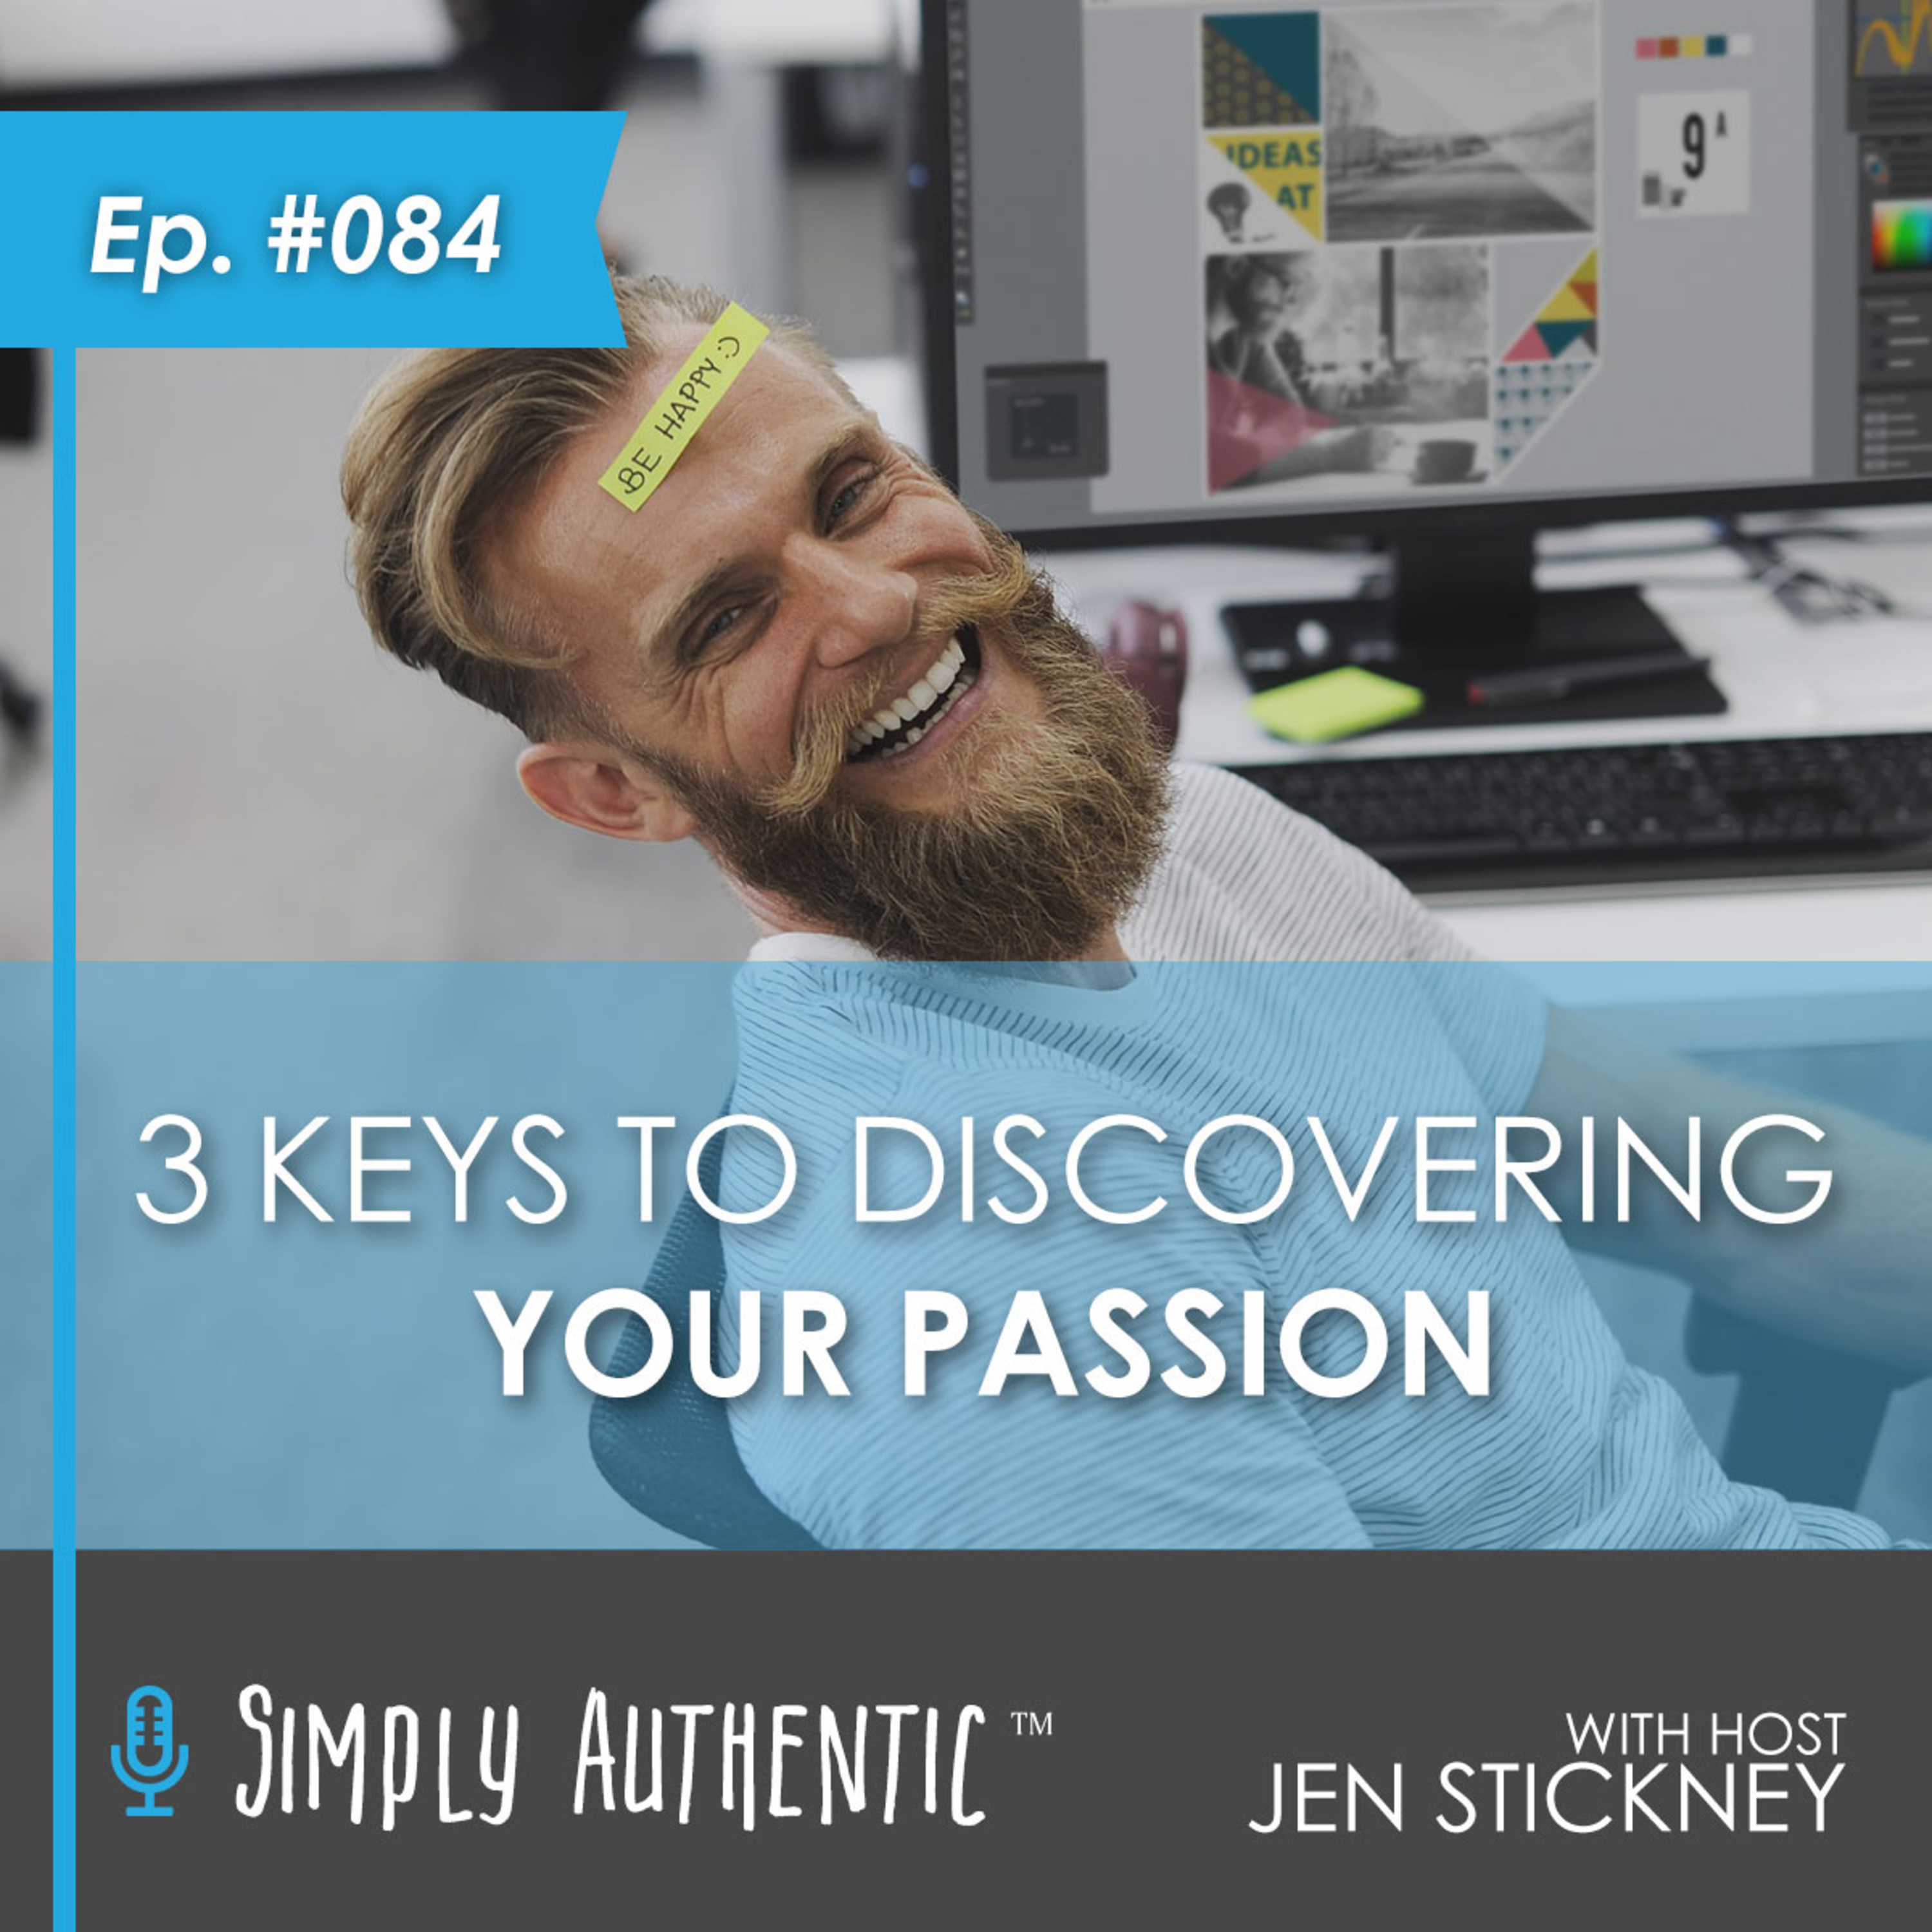 3 Keys to Discovering Your Passion